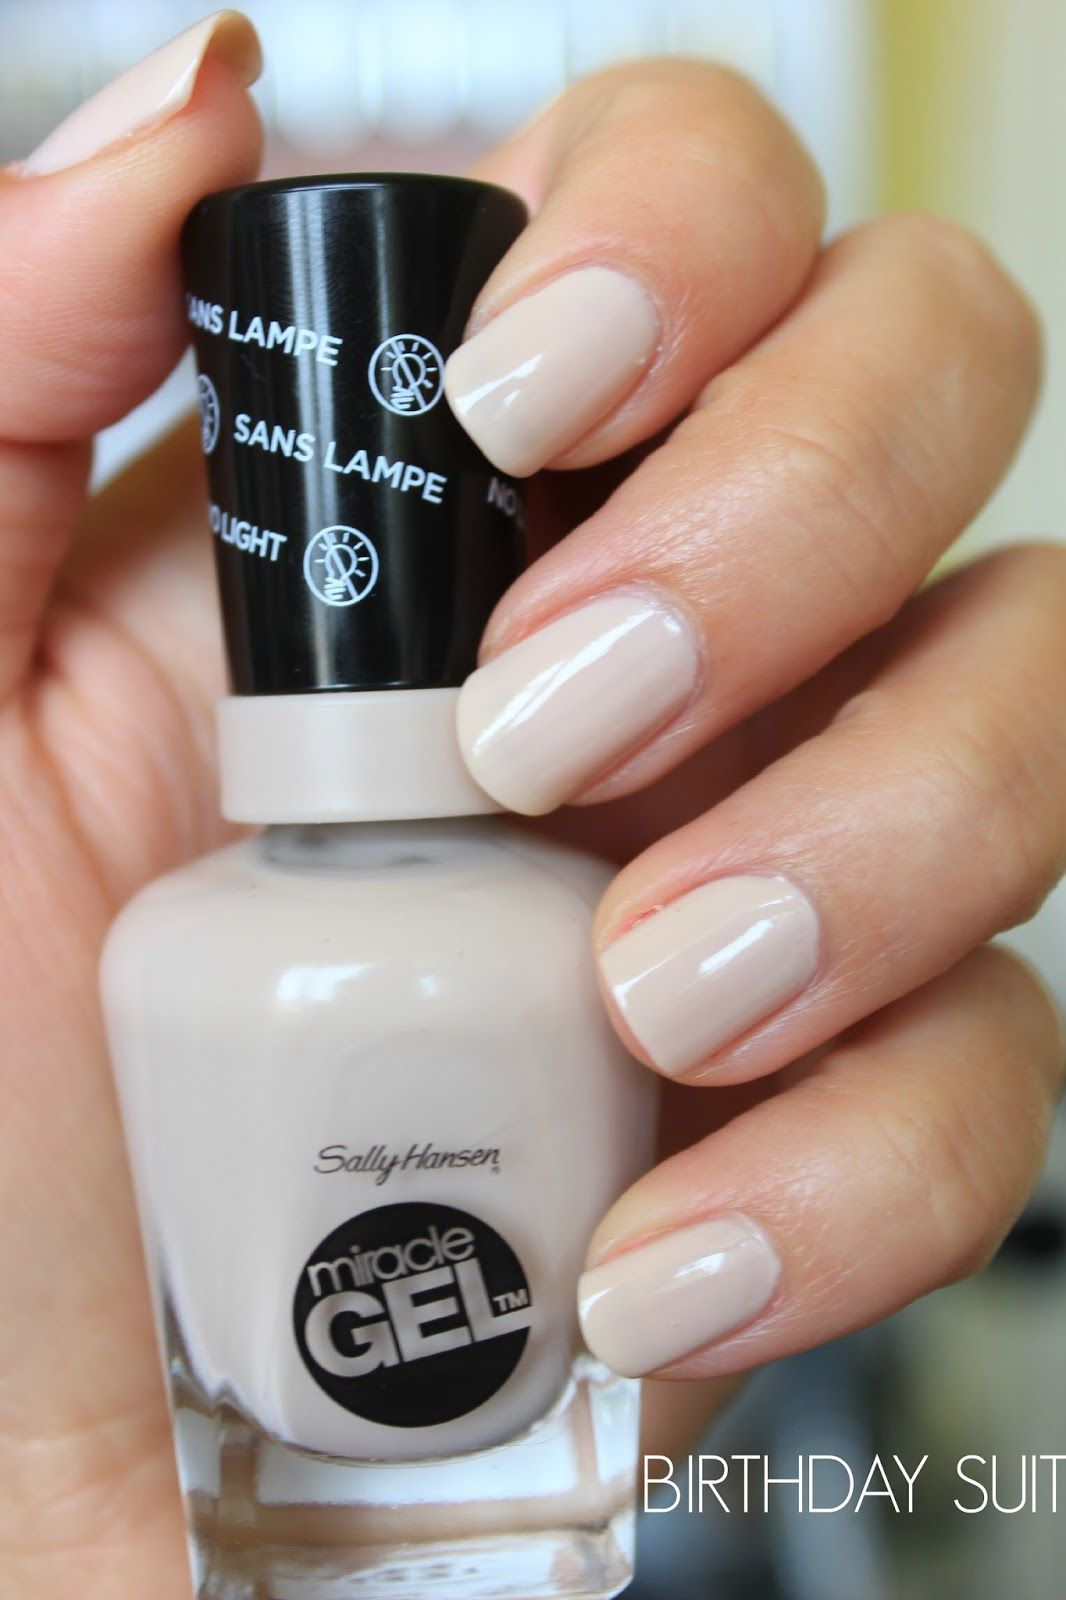 Sally hansen miracle gel nail polish birthday suit trying this sally hansen miracle gel nail polish birthday suit trying this for the 1st time solutioingenieria Images